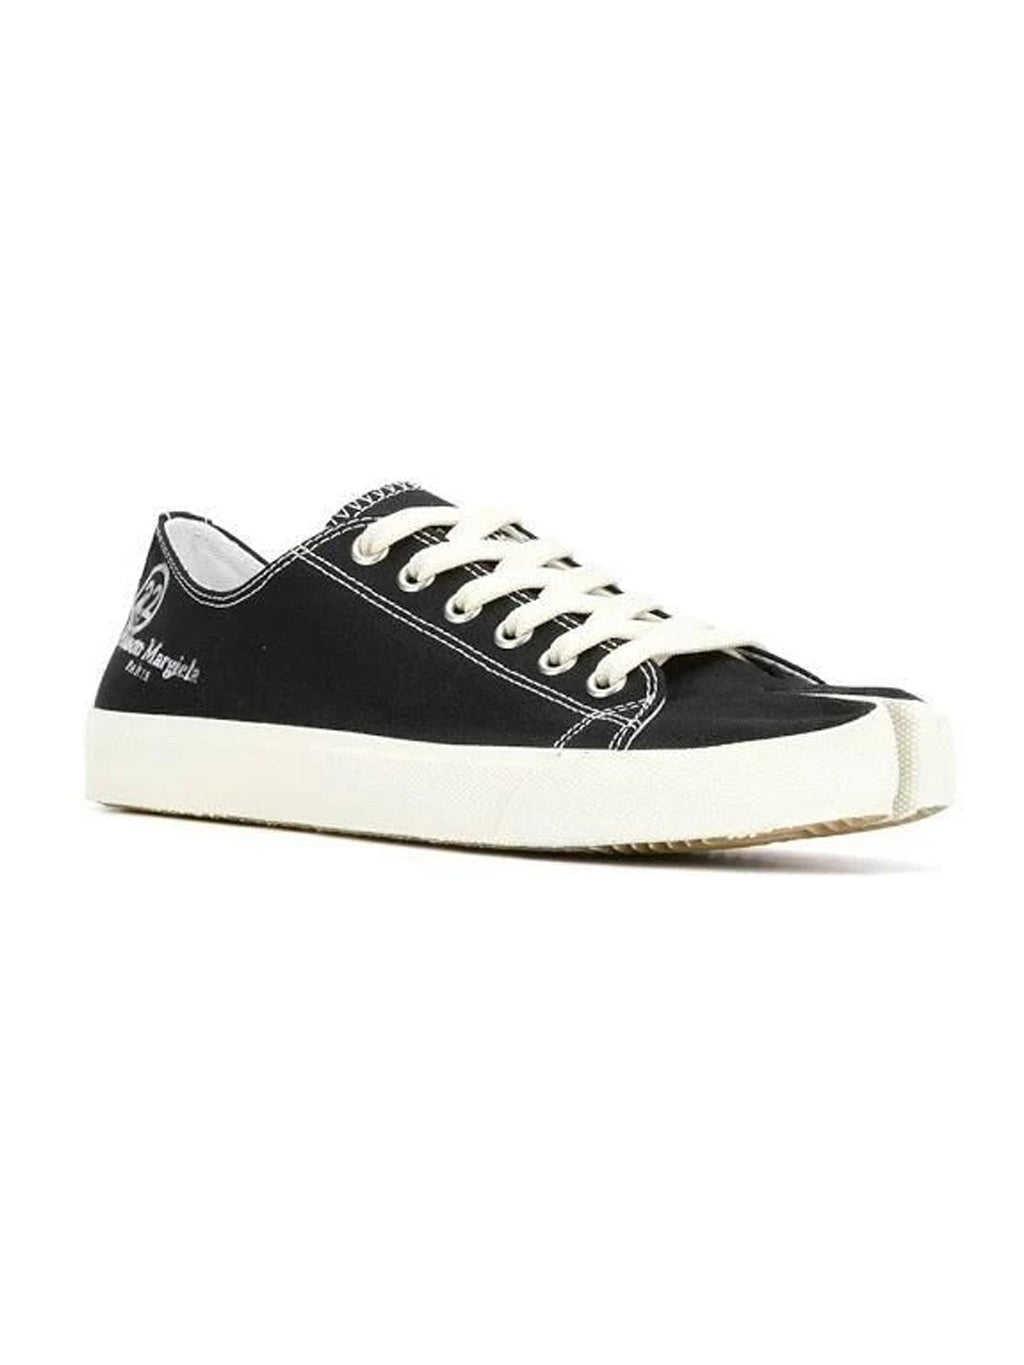 Black Canvas Tabi Sneakers